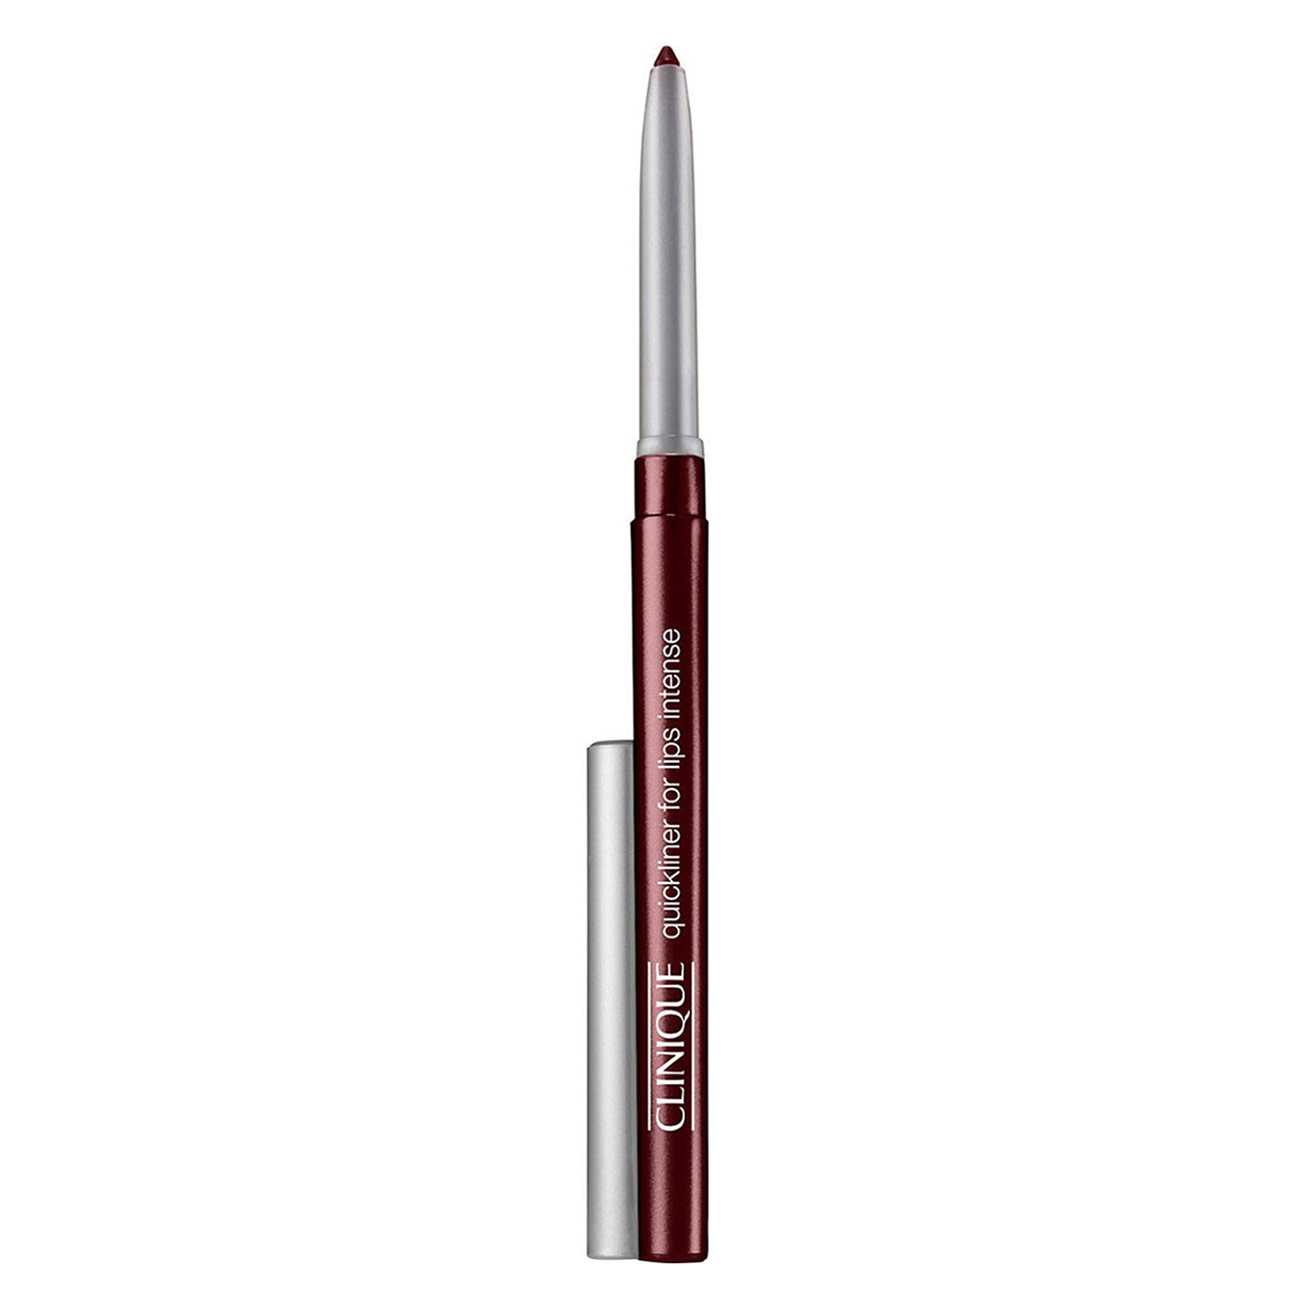 Quickliner For Lips Intense 2.6 G Licorice 12 Clinique imagine 2021 bestvalue.eu